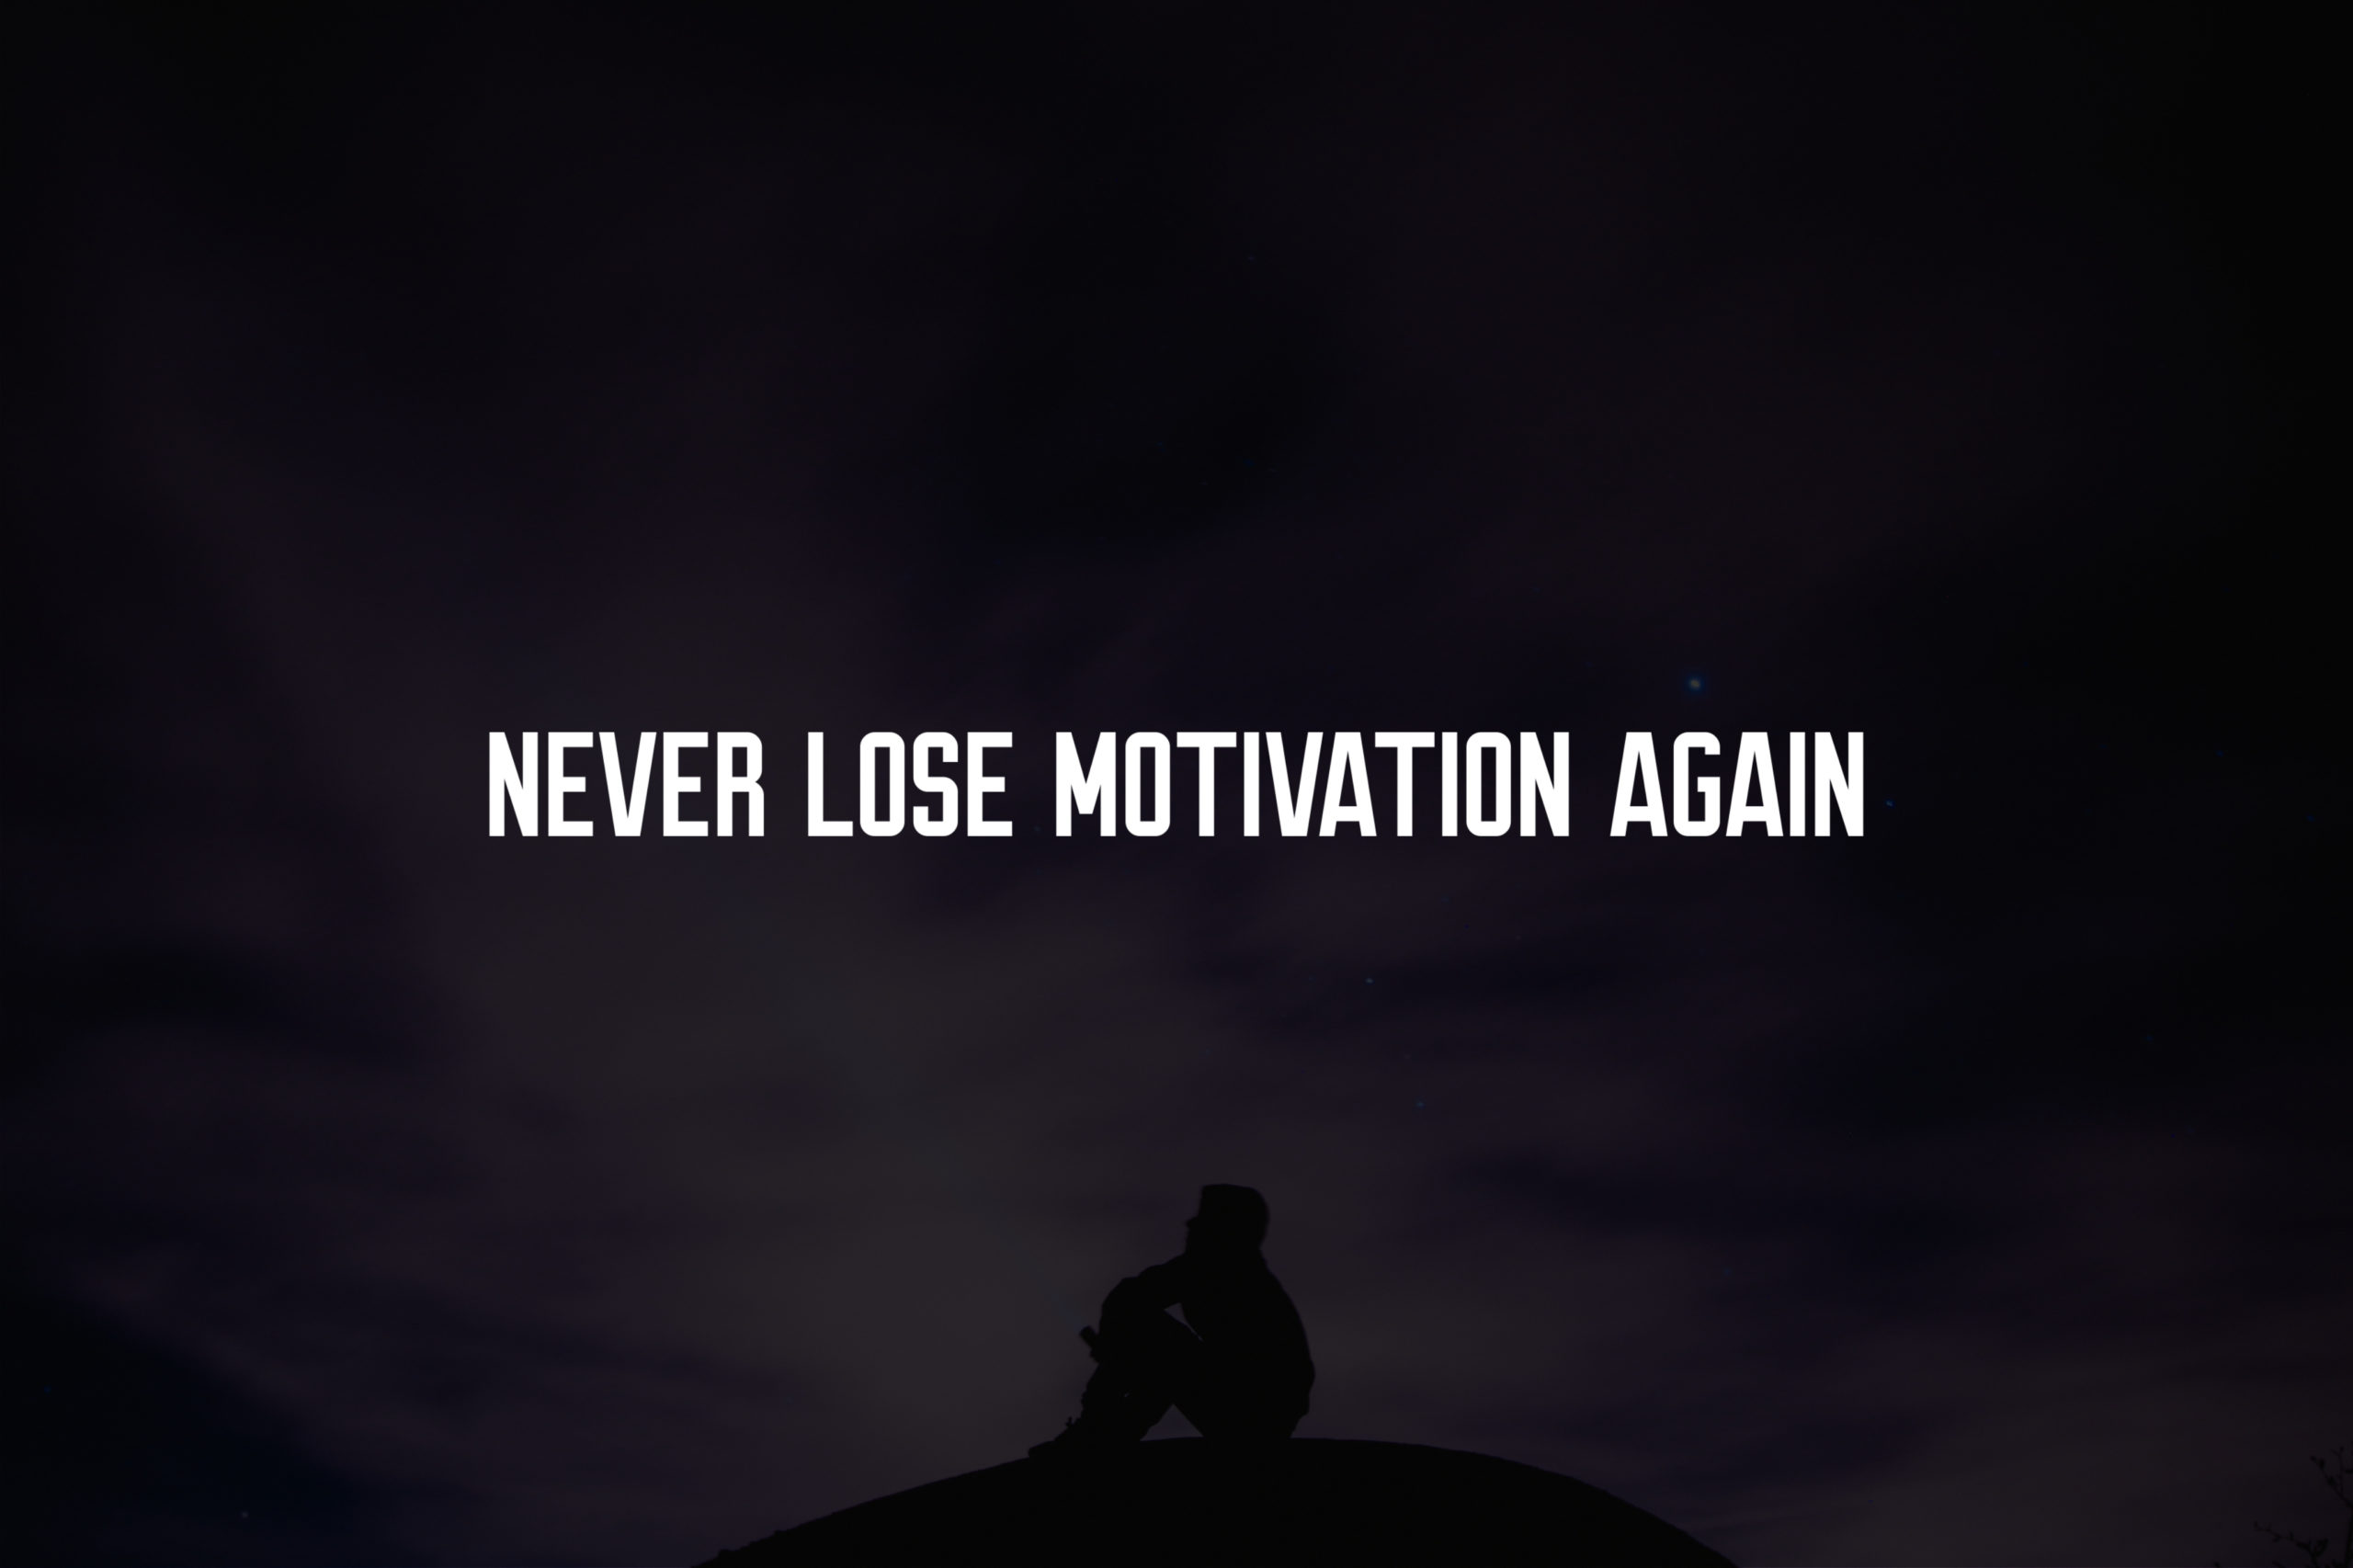 the manly club - never lose motivation again